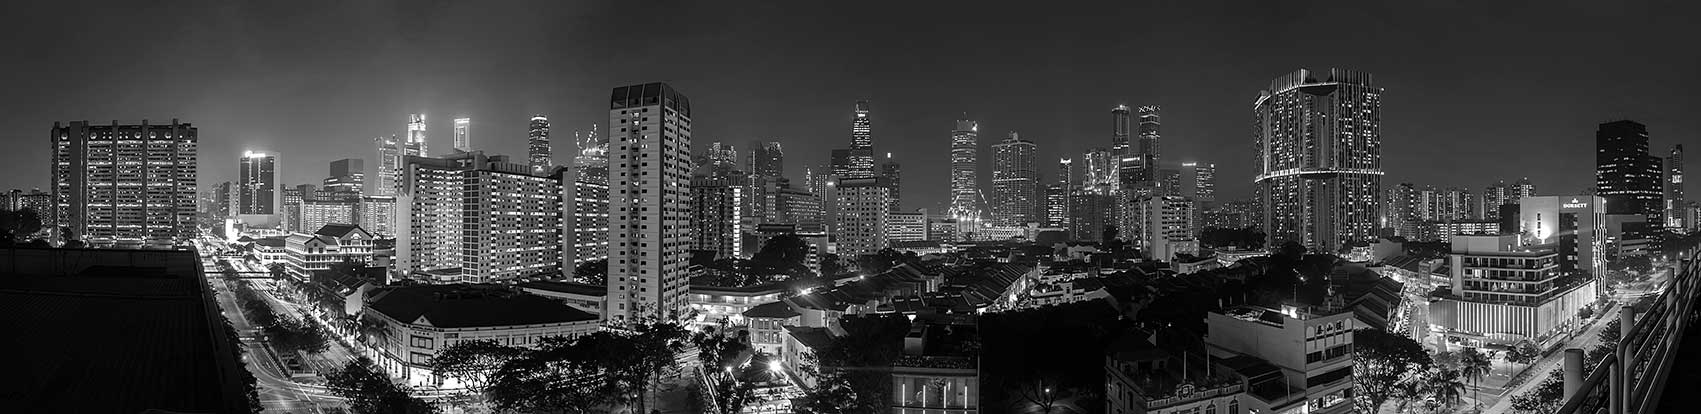 City landscape black and white night photography urban landscape